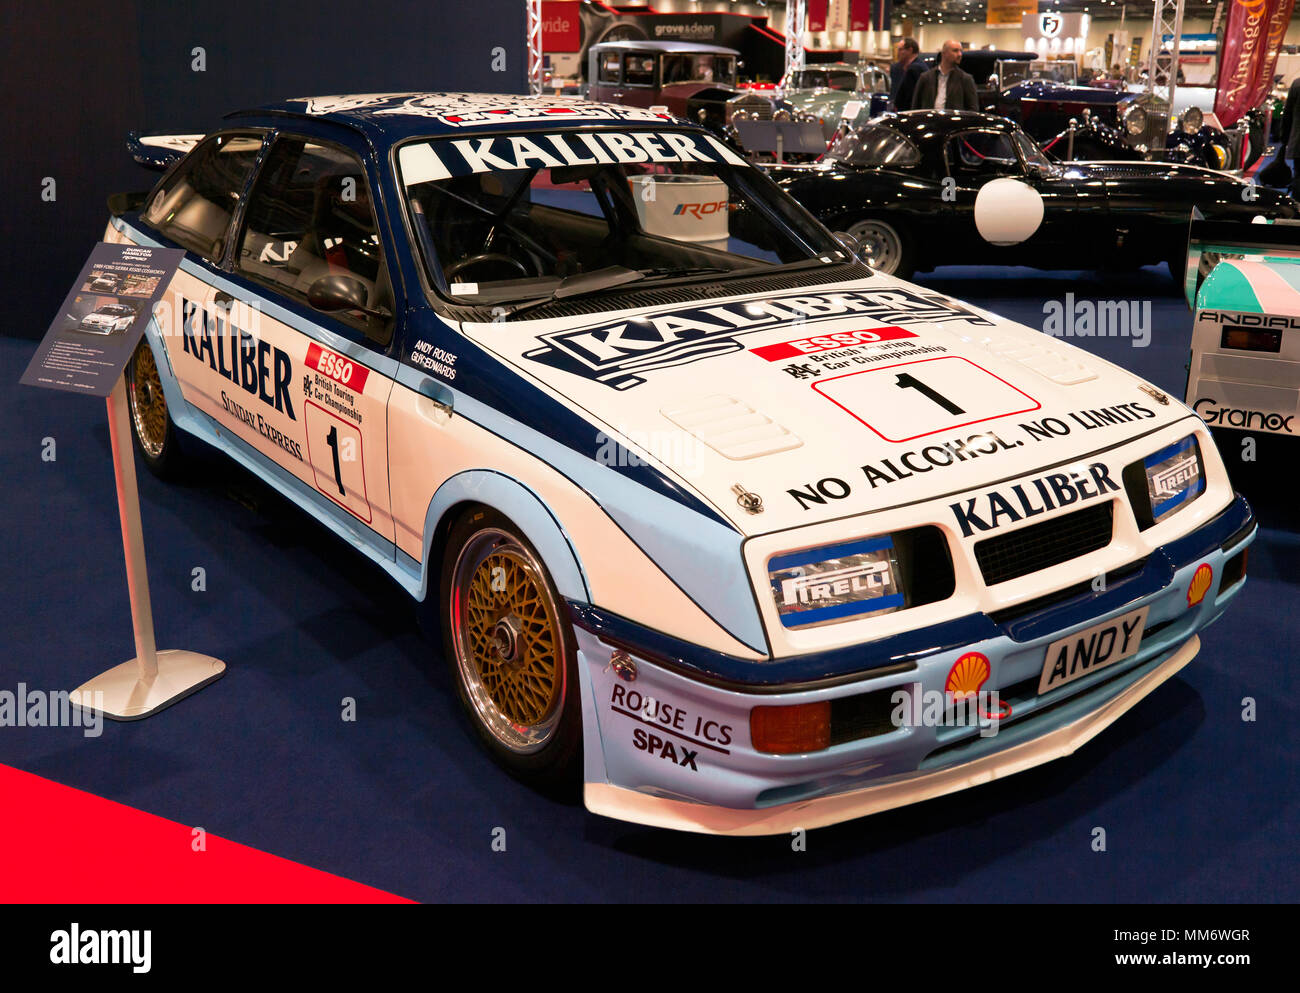 A 1989  Ford Sierra RS500  Cosworth, driven by Andy Rouse  and Guy Edwards, on display at the 2018 London Classic Car Show Stock Photo